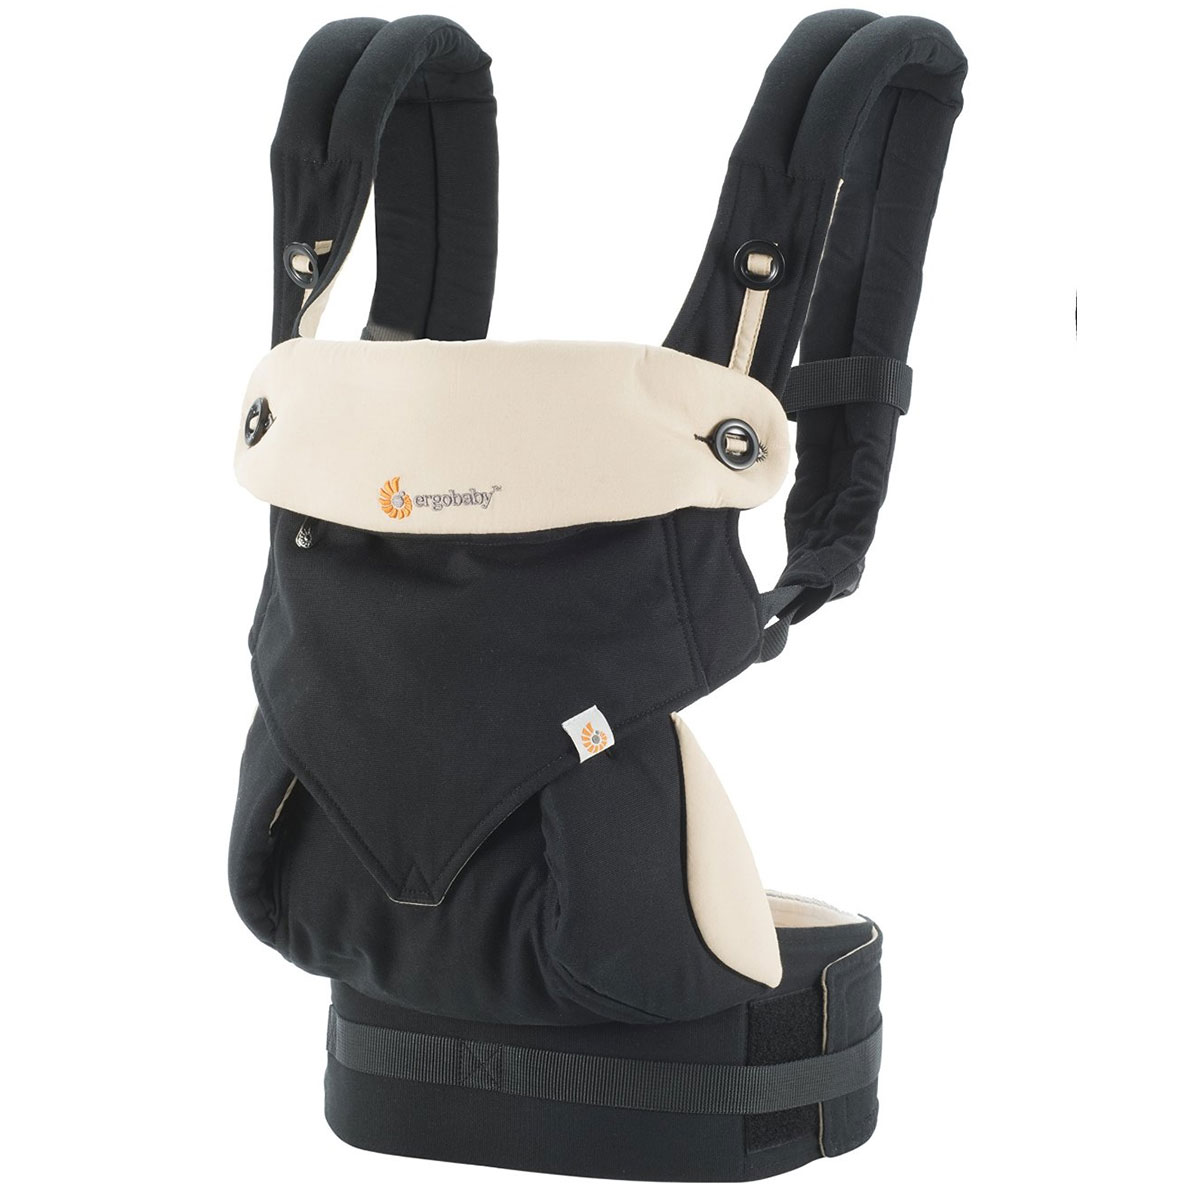 Ergobaby Four Position 360 Carrier - Black/Camel